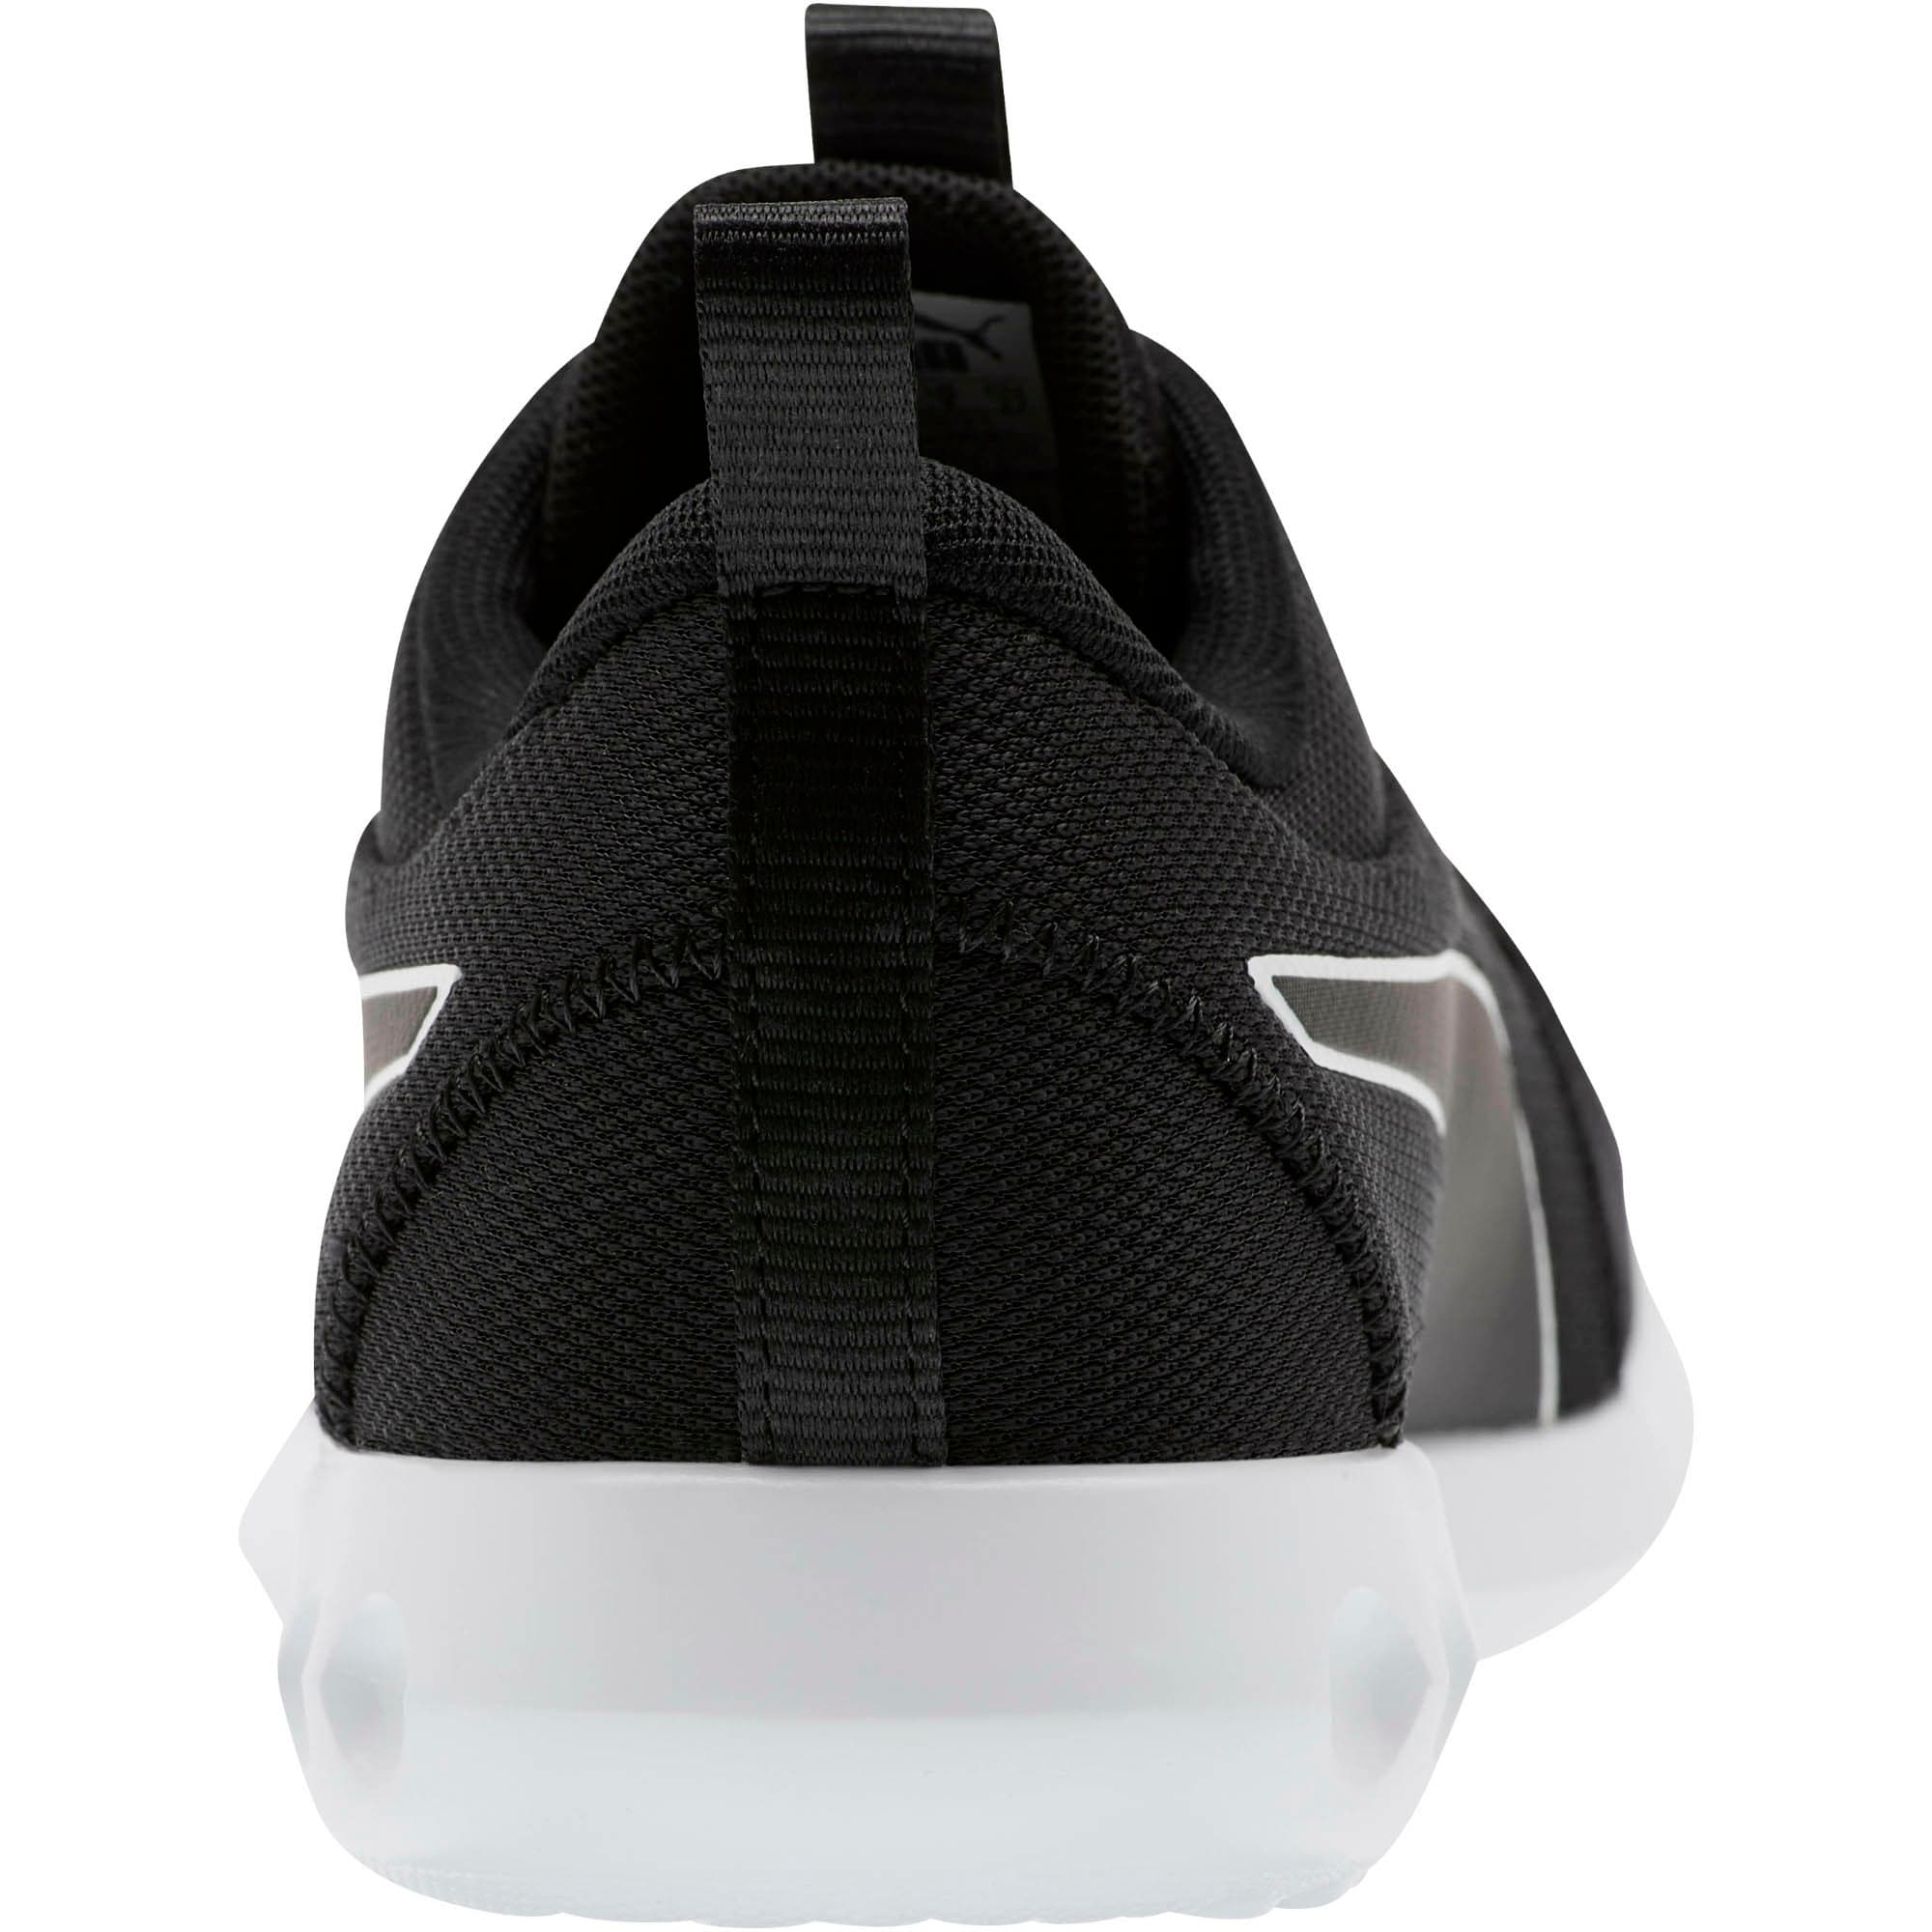 Thumbnail 3 of Carson 2 Cosmo Men's Running Shoes, Puma Black-Puma White, medium